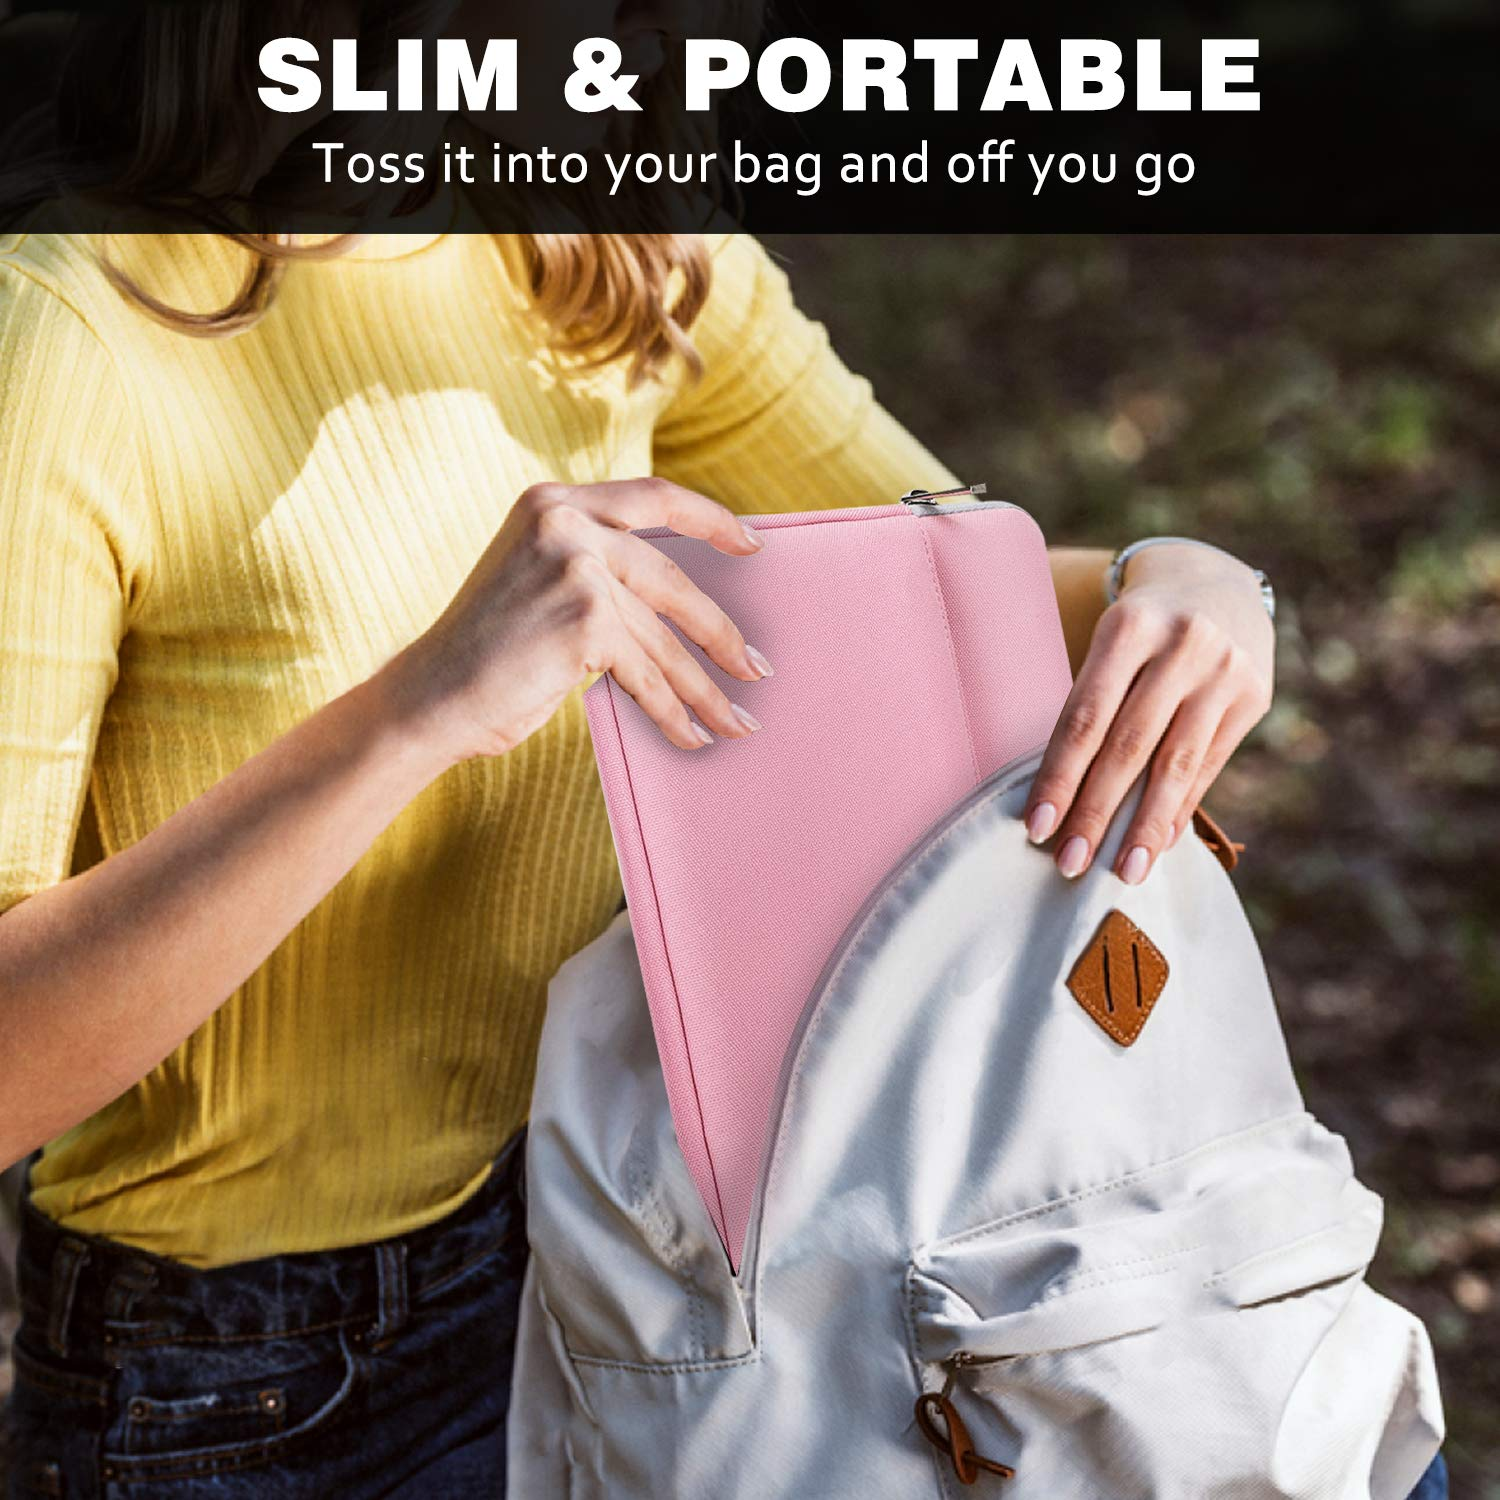 MoKo 9-11 Inch Sleeve Case Bag Samsung Galaxy Tab A 10.1 // Surface Go 10 2018 Polyester Tablet Cover with Pocket Fits iPad Air 3 10.5 2019 iPad 9.7 2018//2017 iPad Pro 11 2018 Pink